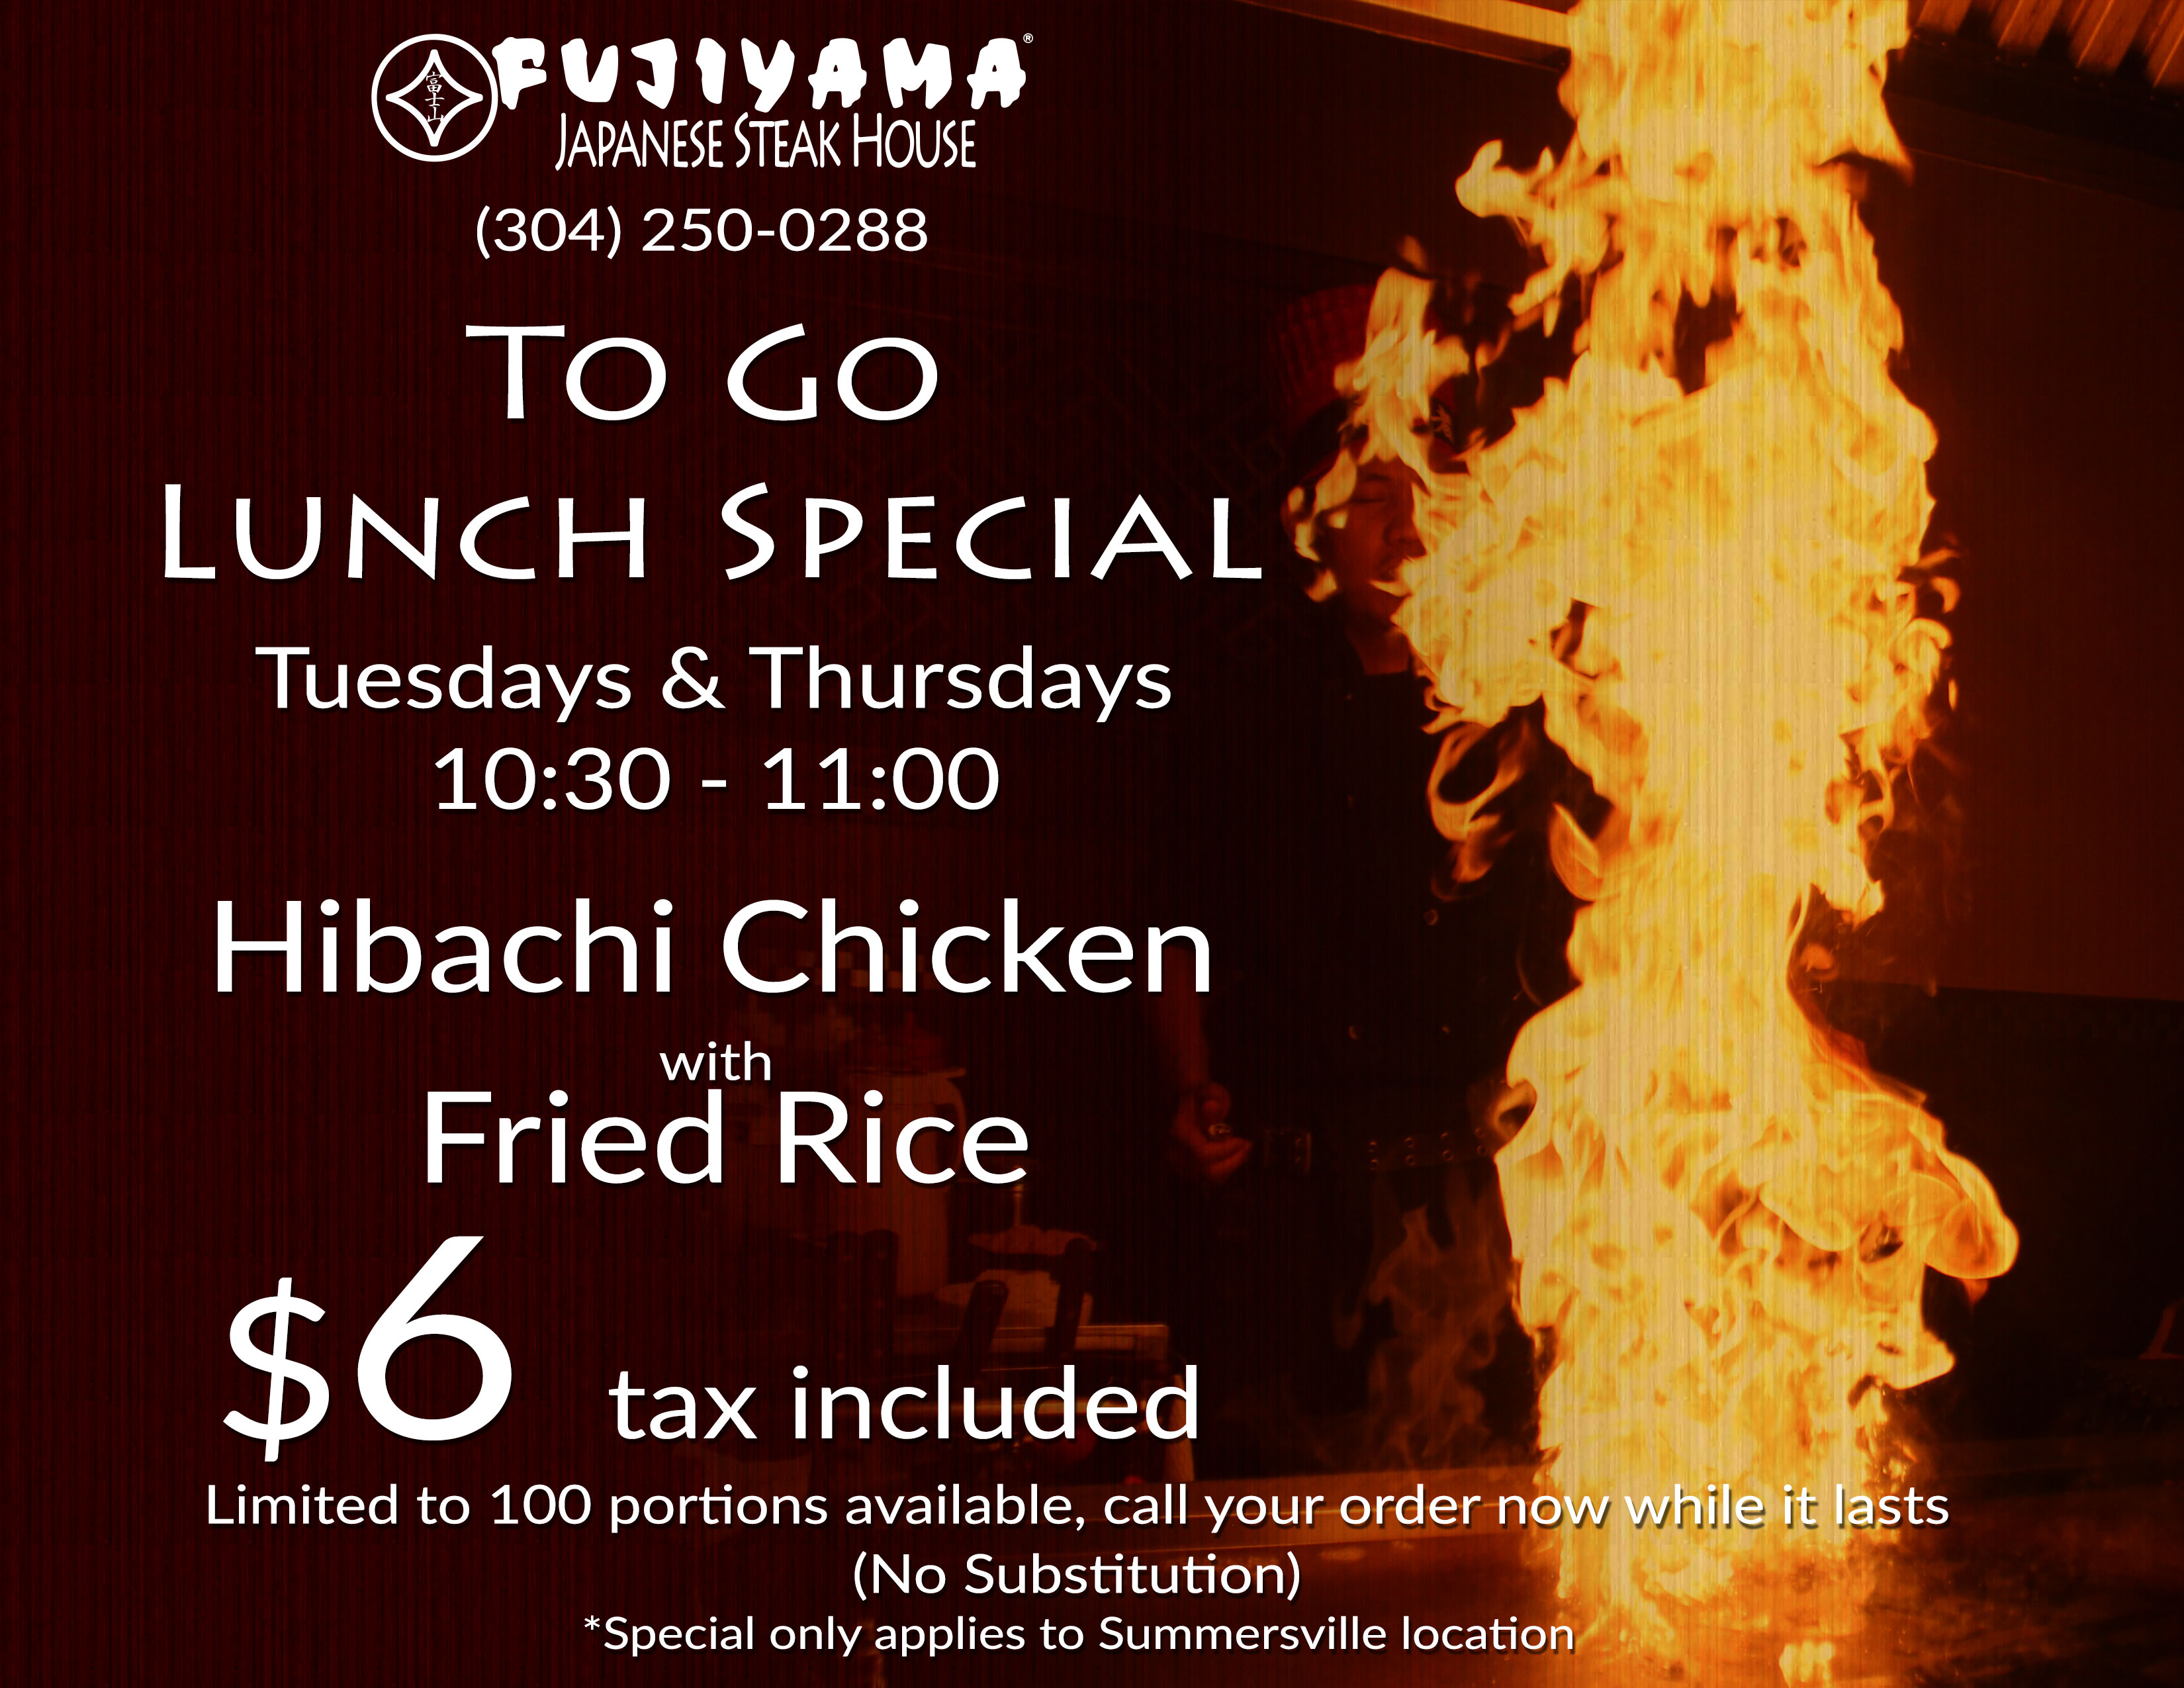 Fujiyama Japanese Steak House Flyer Online Digital Marketing Graphic Design Cucumber and Company